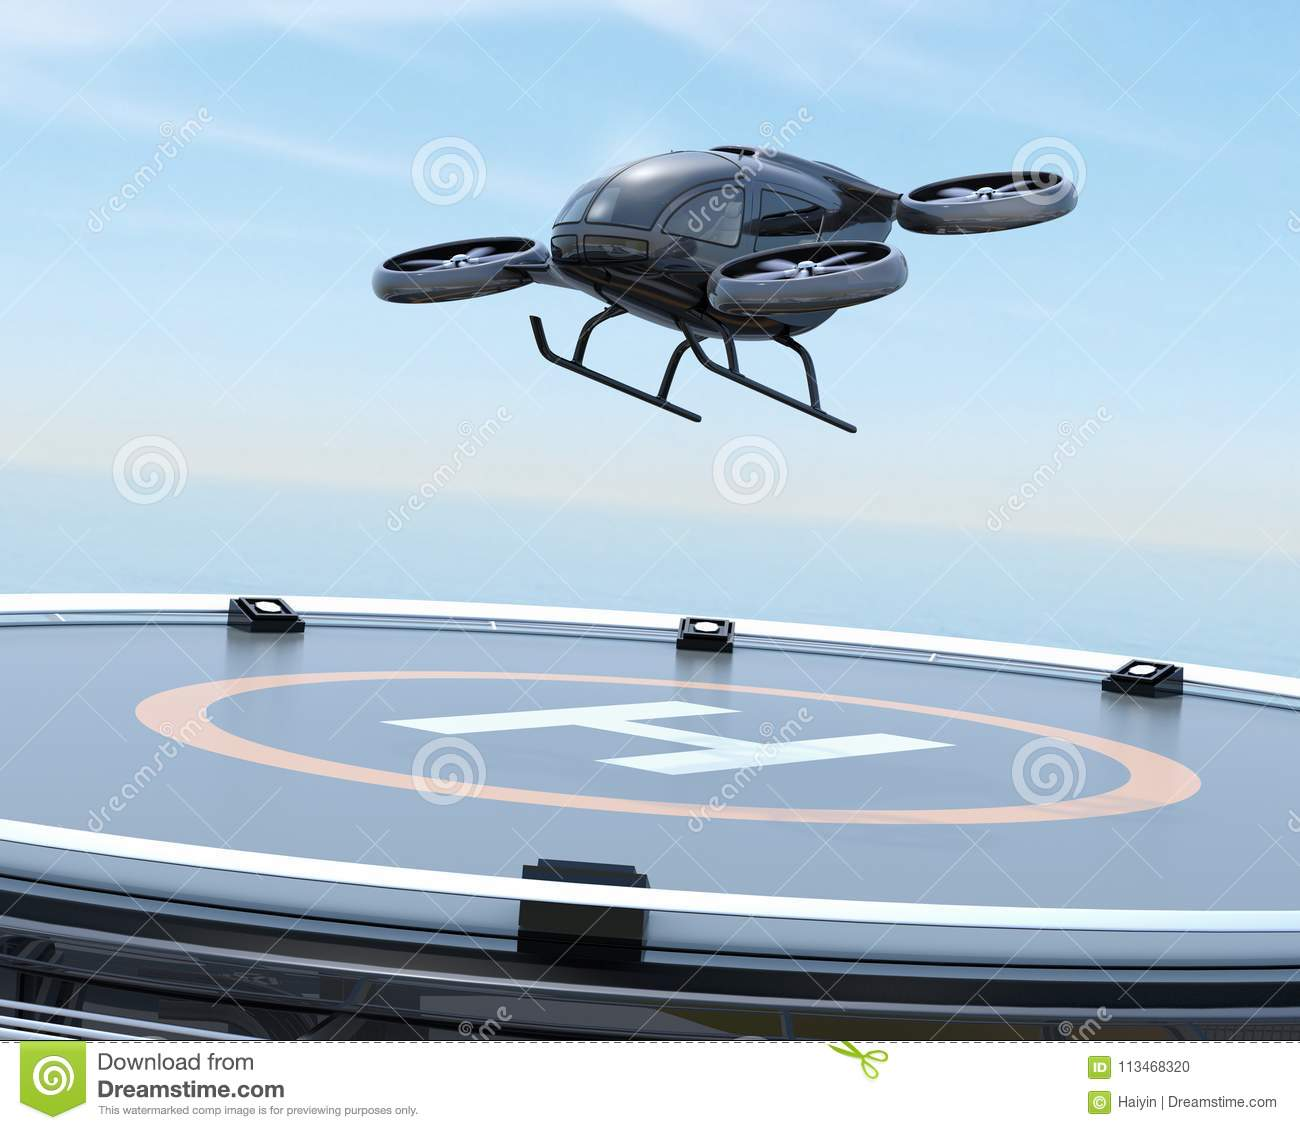 Black self-driving passenger drone takeoff from helipad